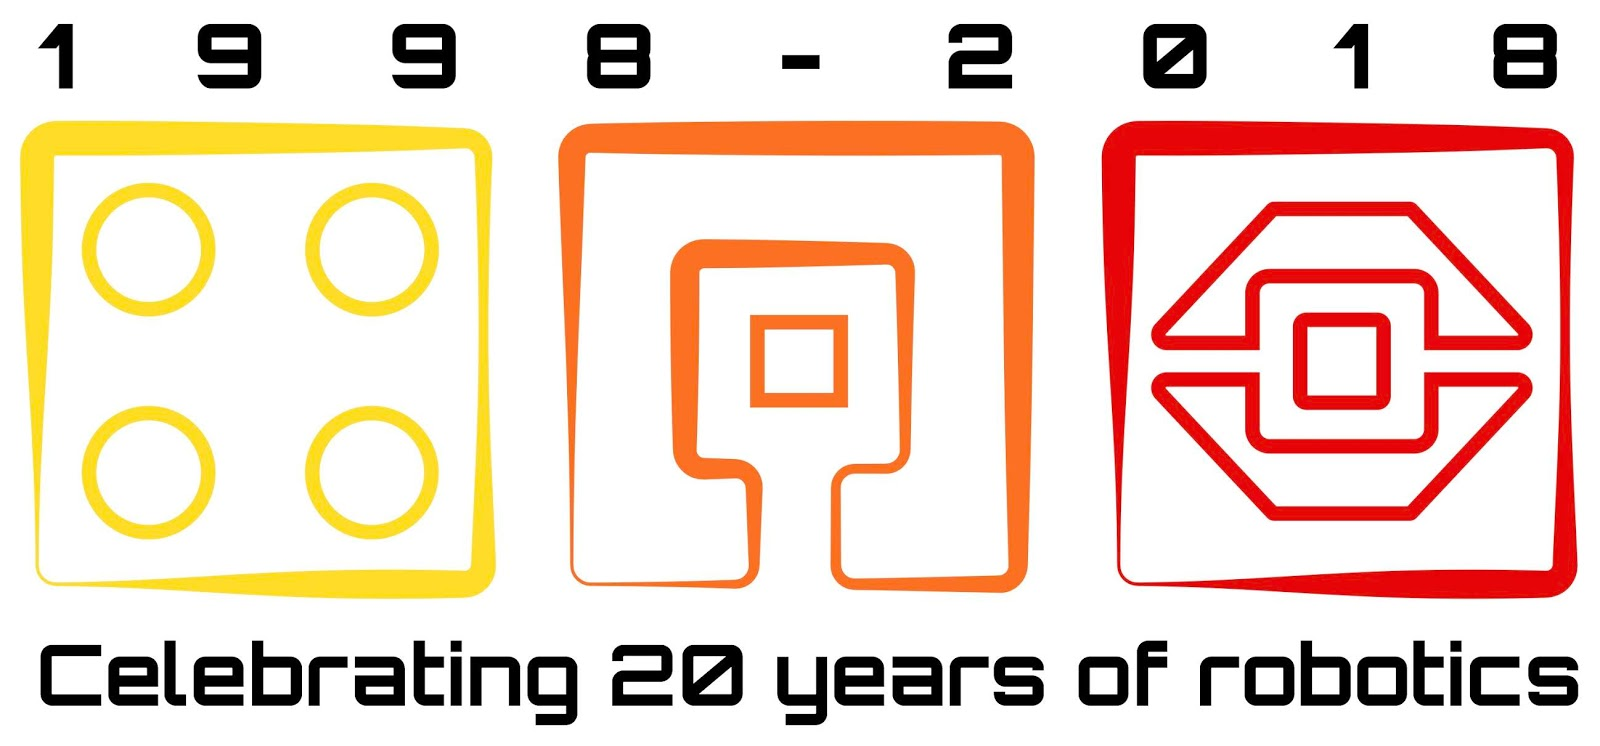 LEGO MINDSTORMS 20th ANNIVERSARY | The NXT STEP is EV3 - LEGO